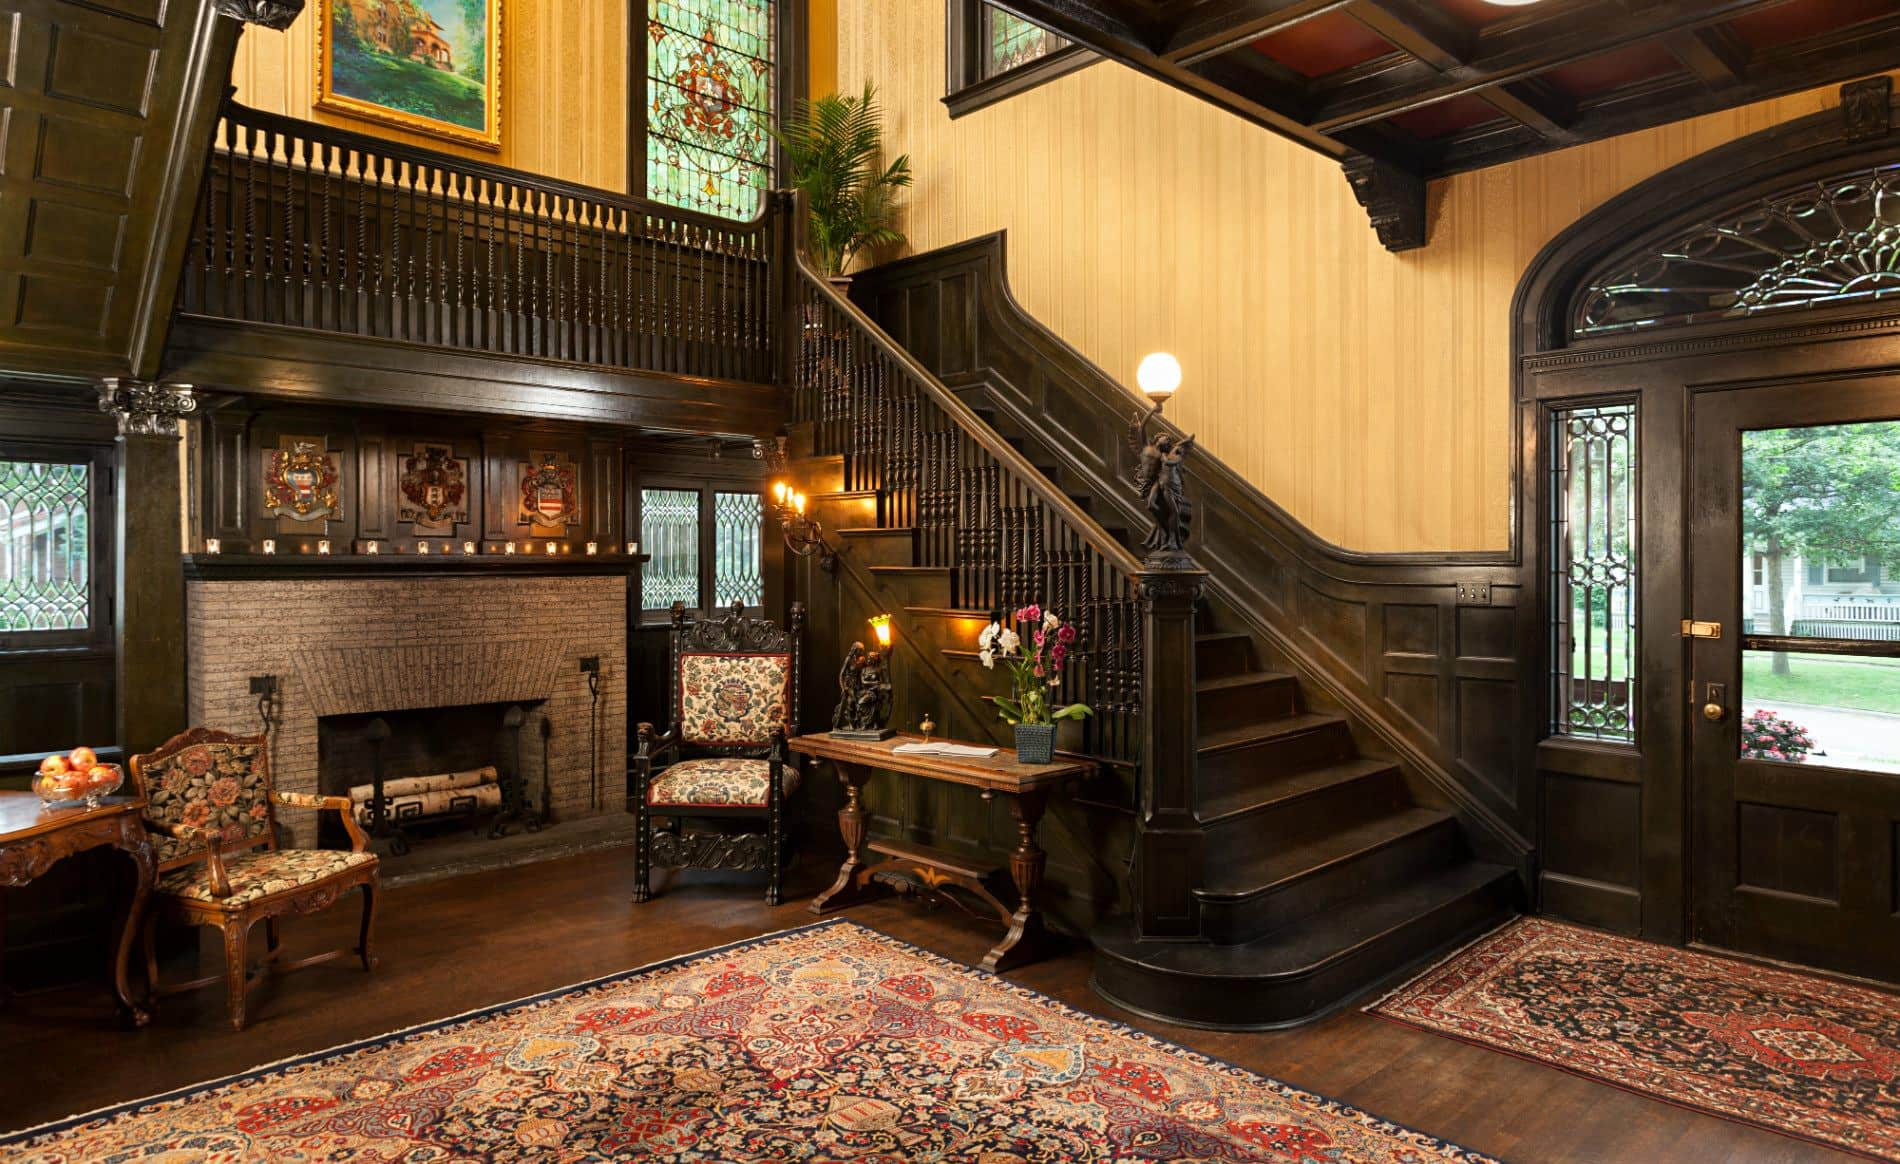 Beige papered walls, wood floors, ornamental rug, two side chairs flanking a fireplace and an elaborate dark wood staircase